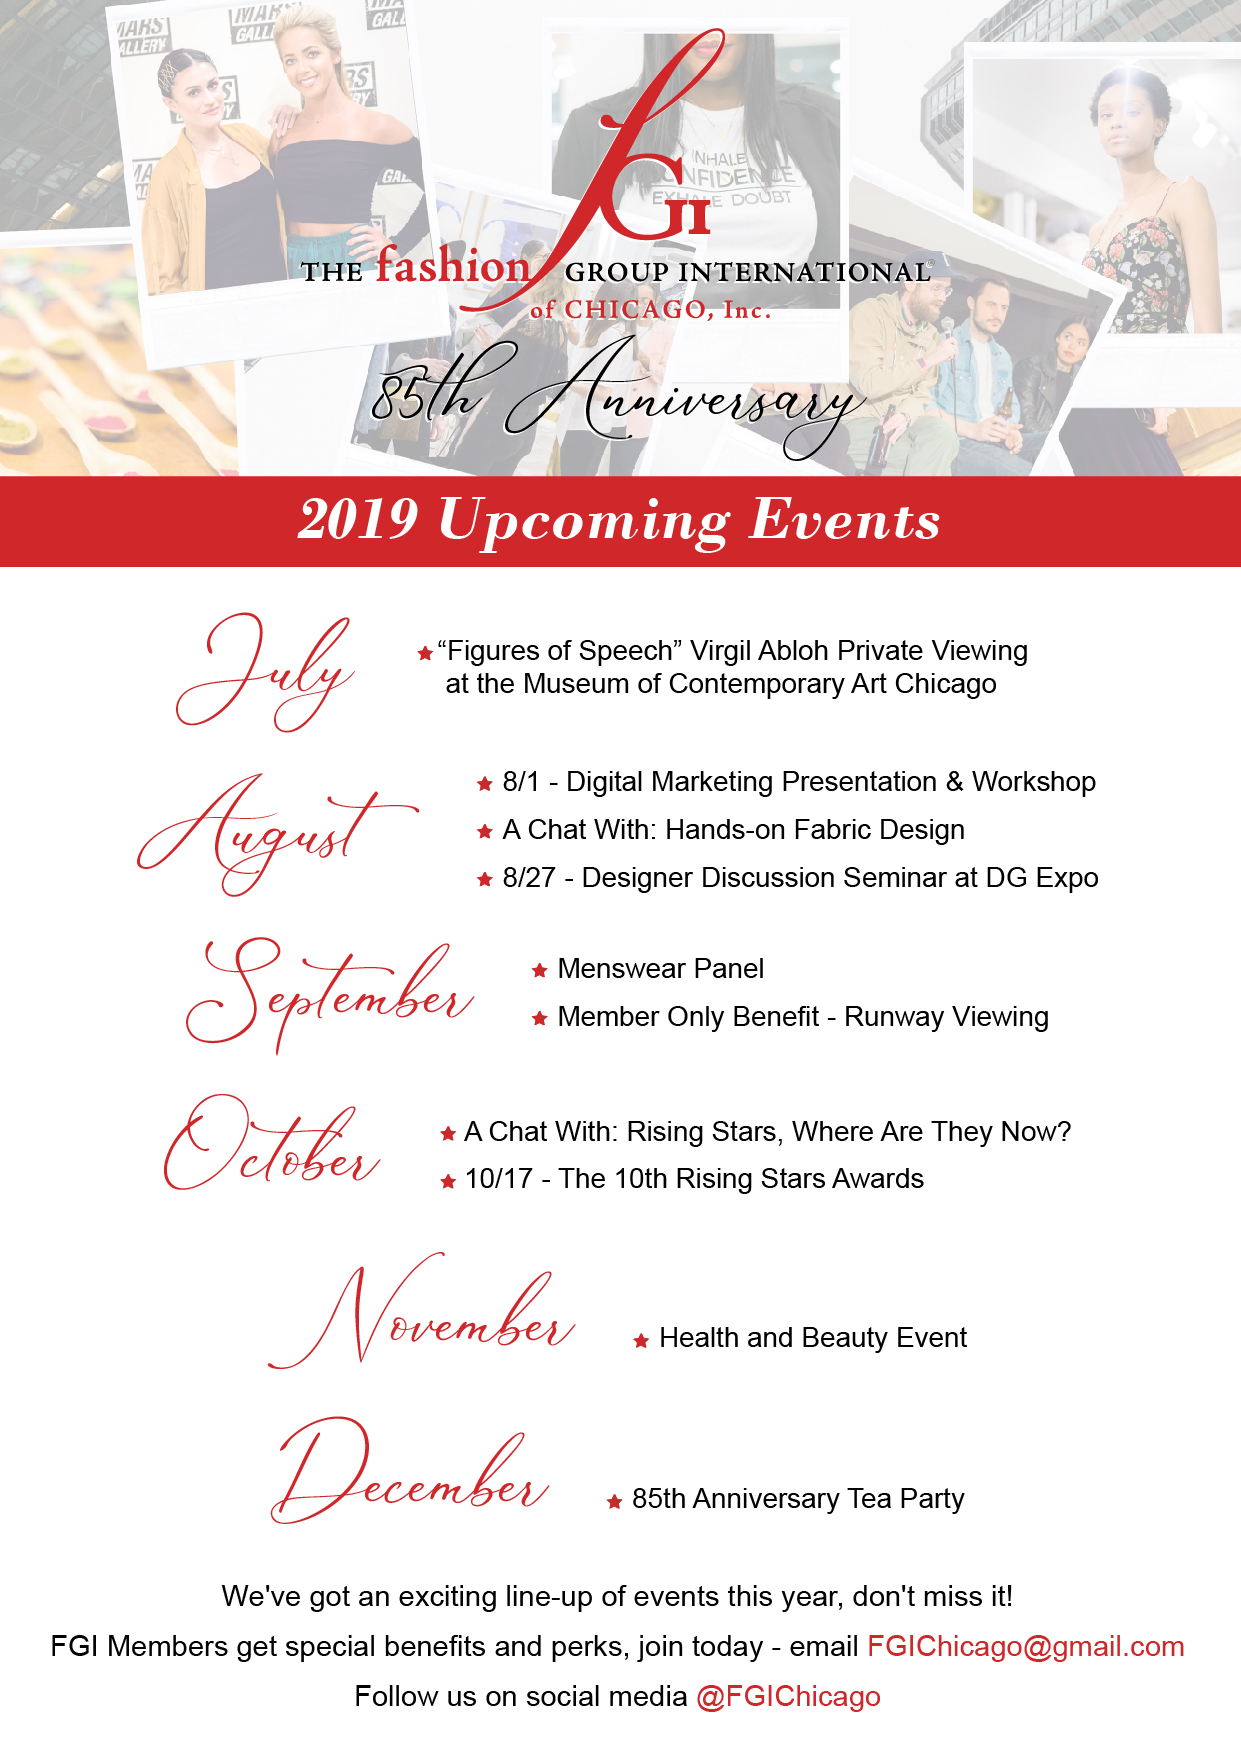 FGI Chicago Upcoming 2019 Events